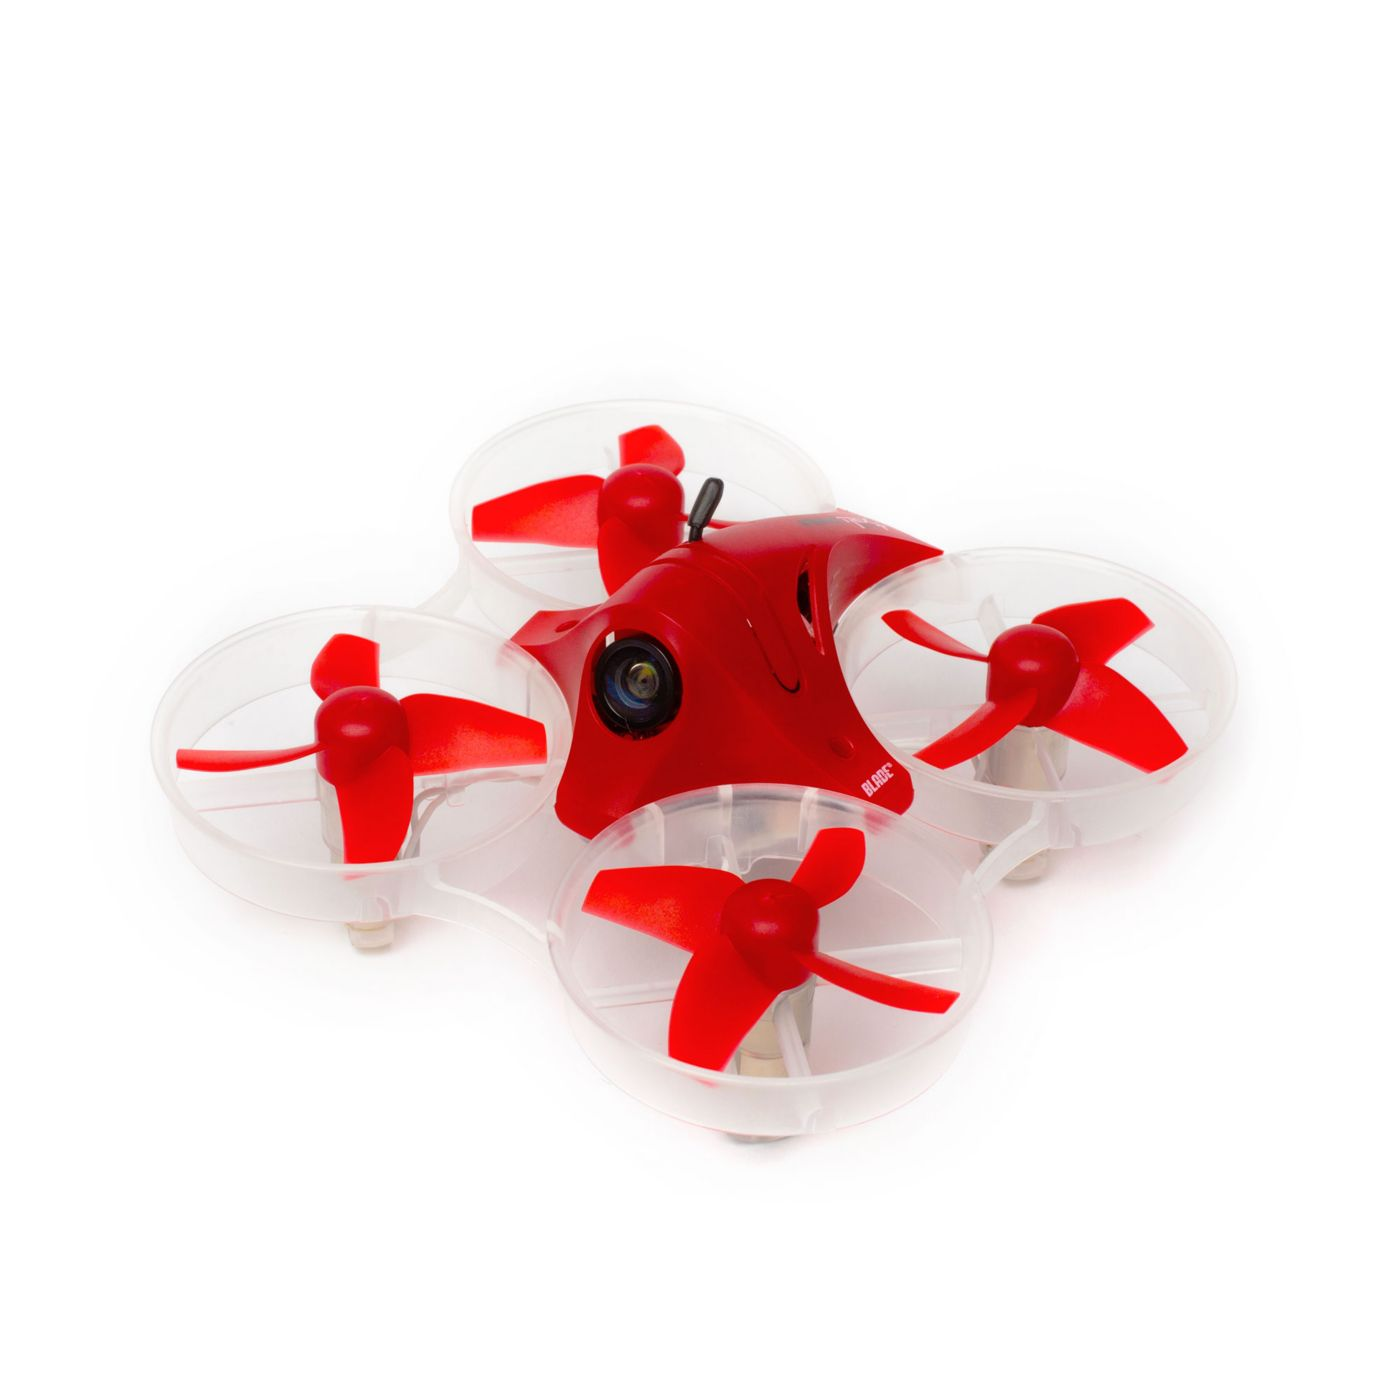 Blade inductrix FPV plus RTF BLH9600